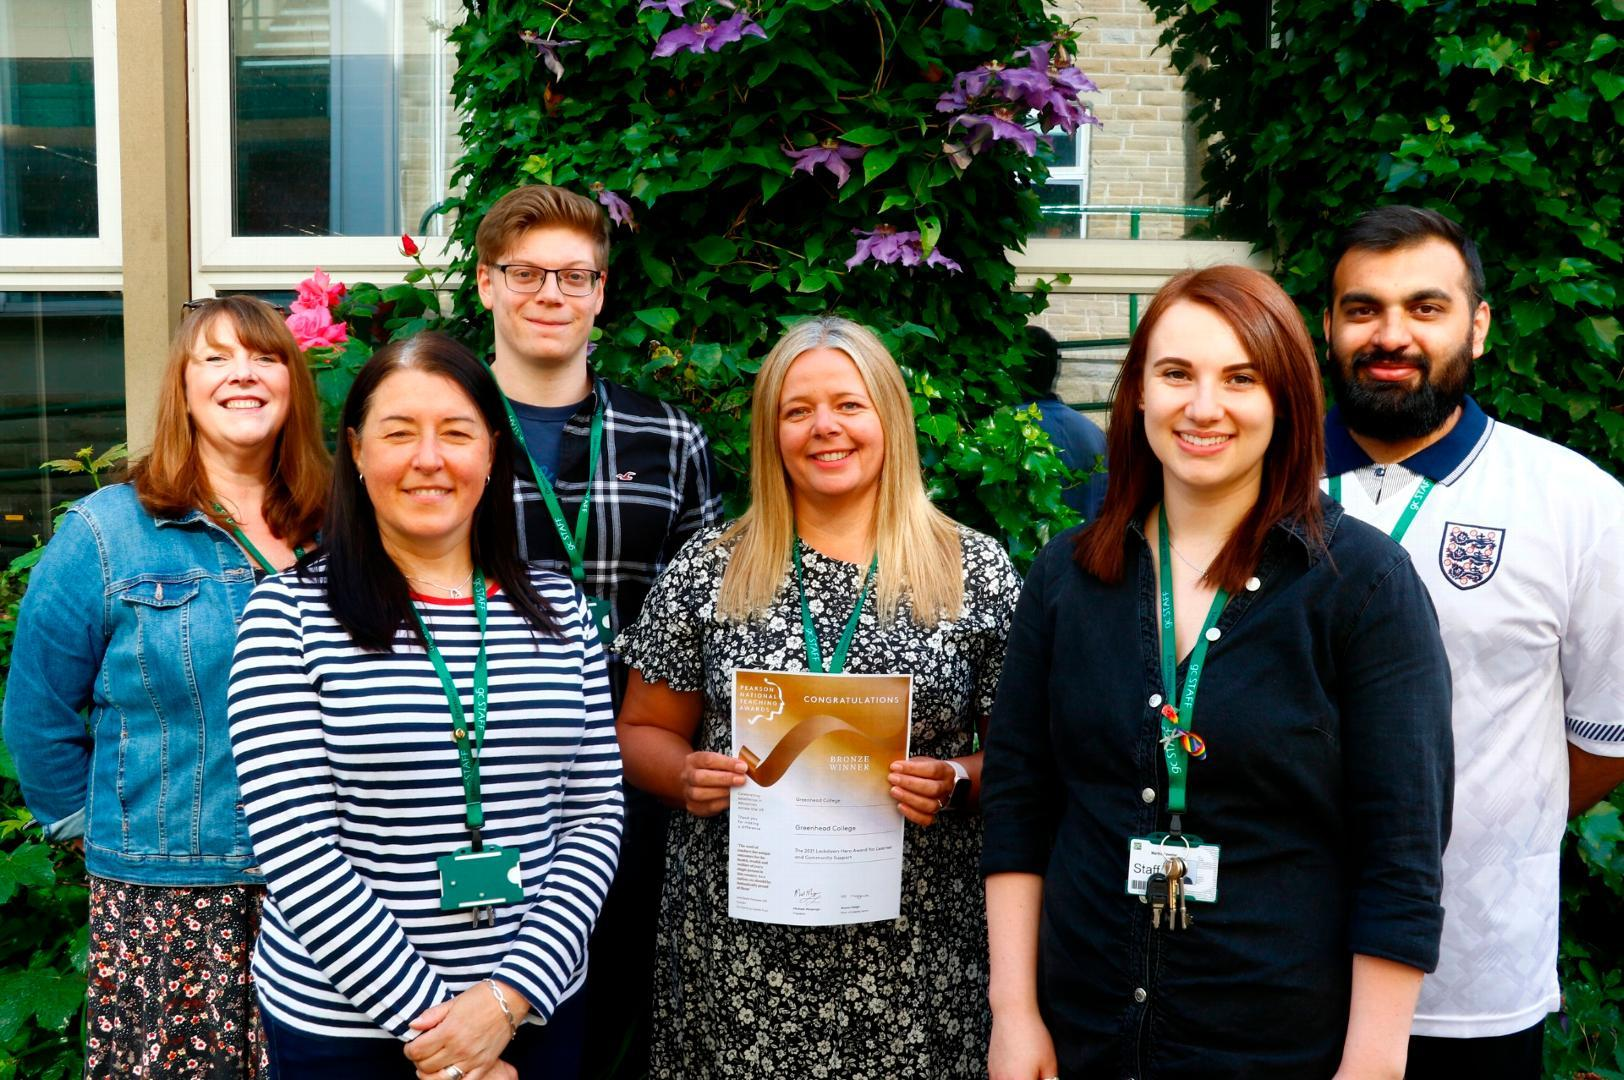 A duo of national award wins recognising Greenhead College's student support!